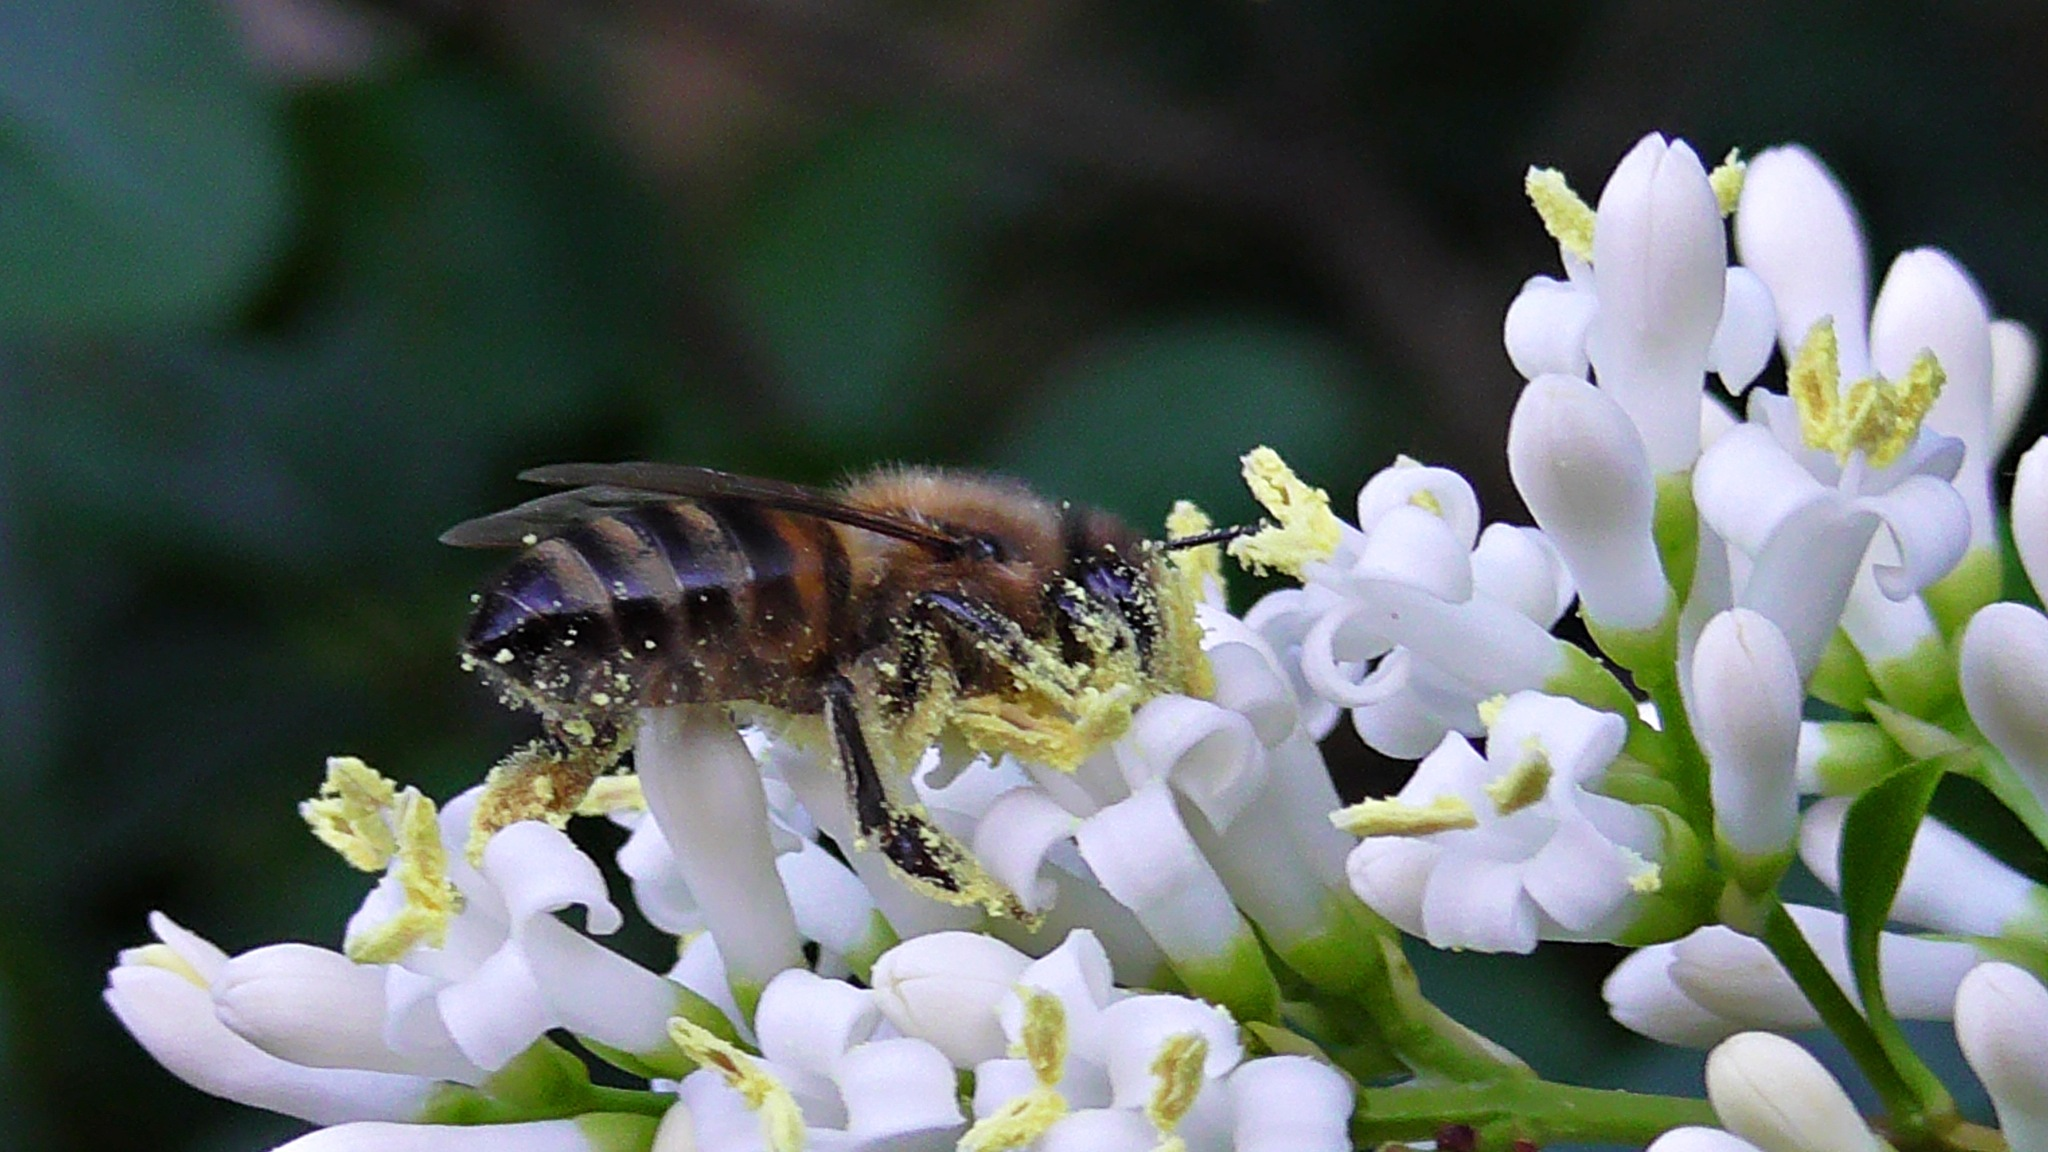 Bee and on white flowers by evakalocsay